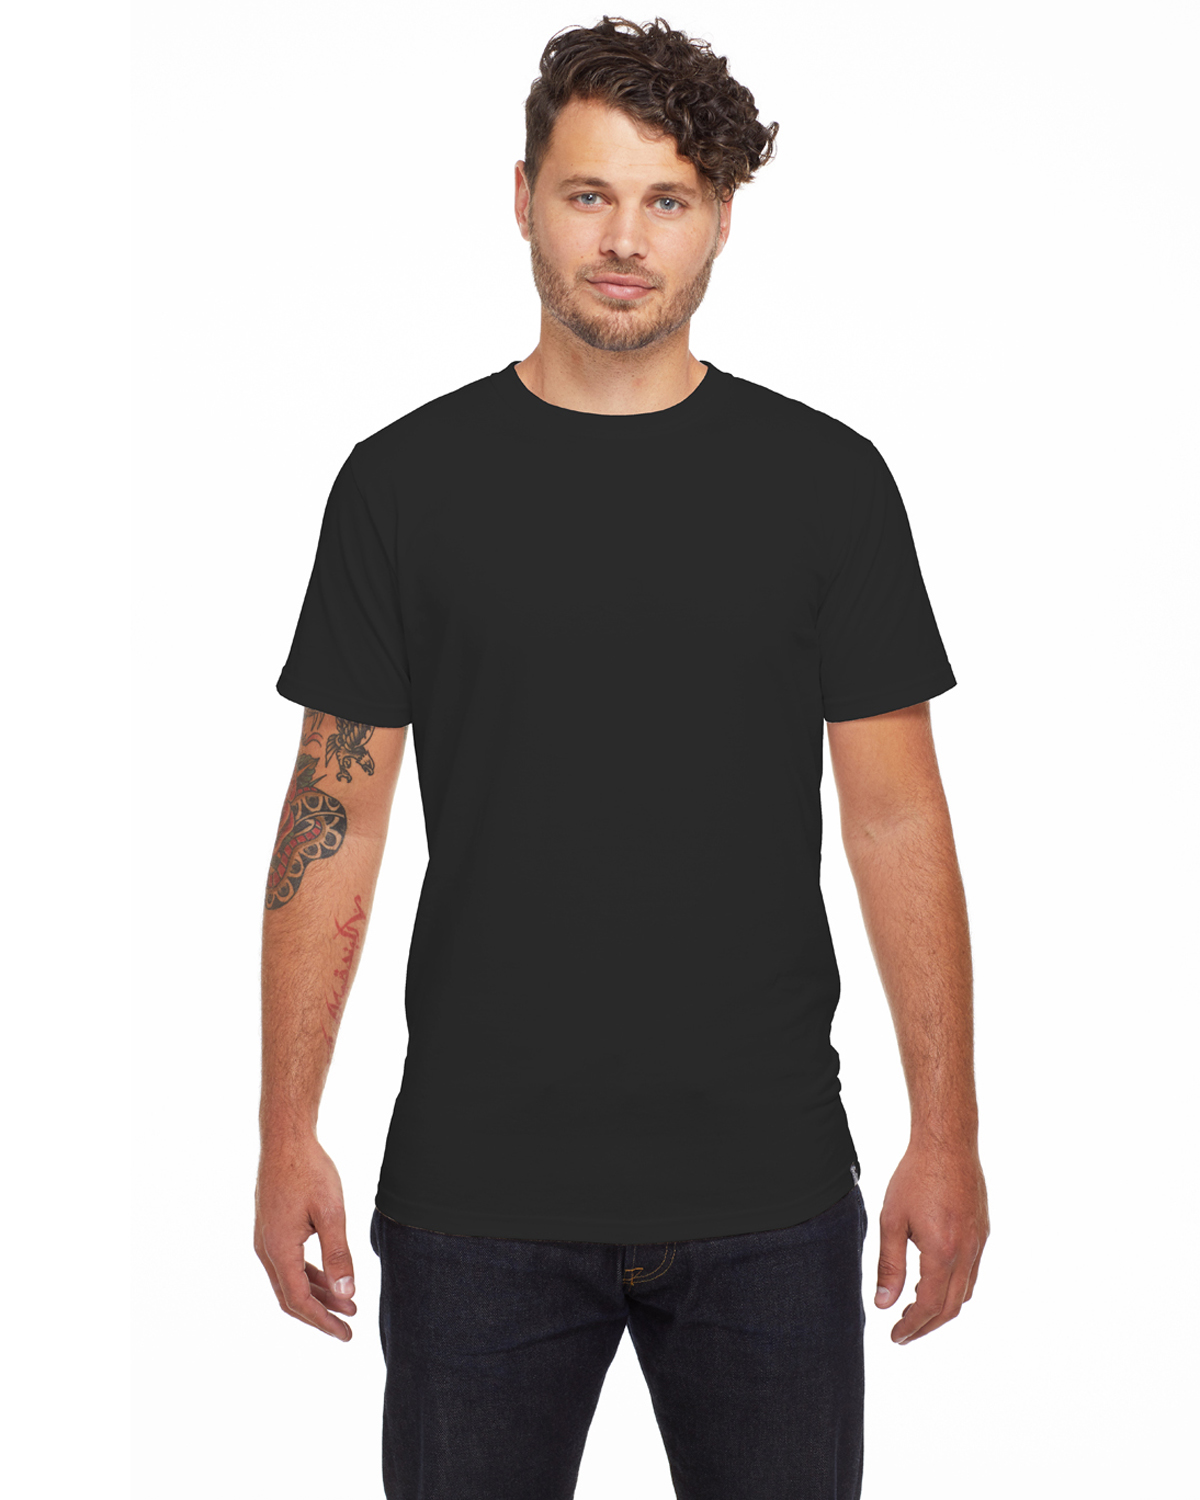 Econscious EC1007U - Unisex 5.5 oz., Organic USA Made T-Shirt